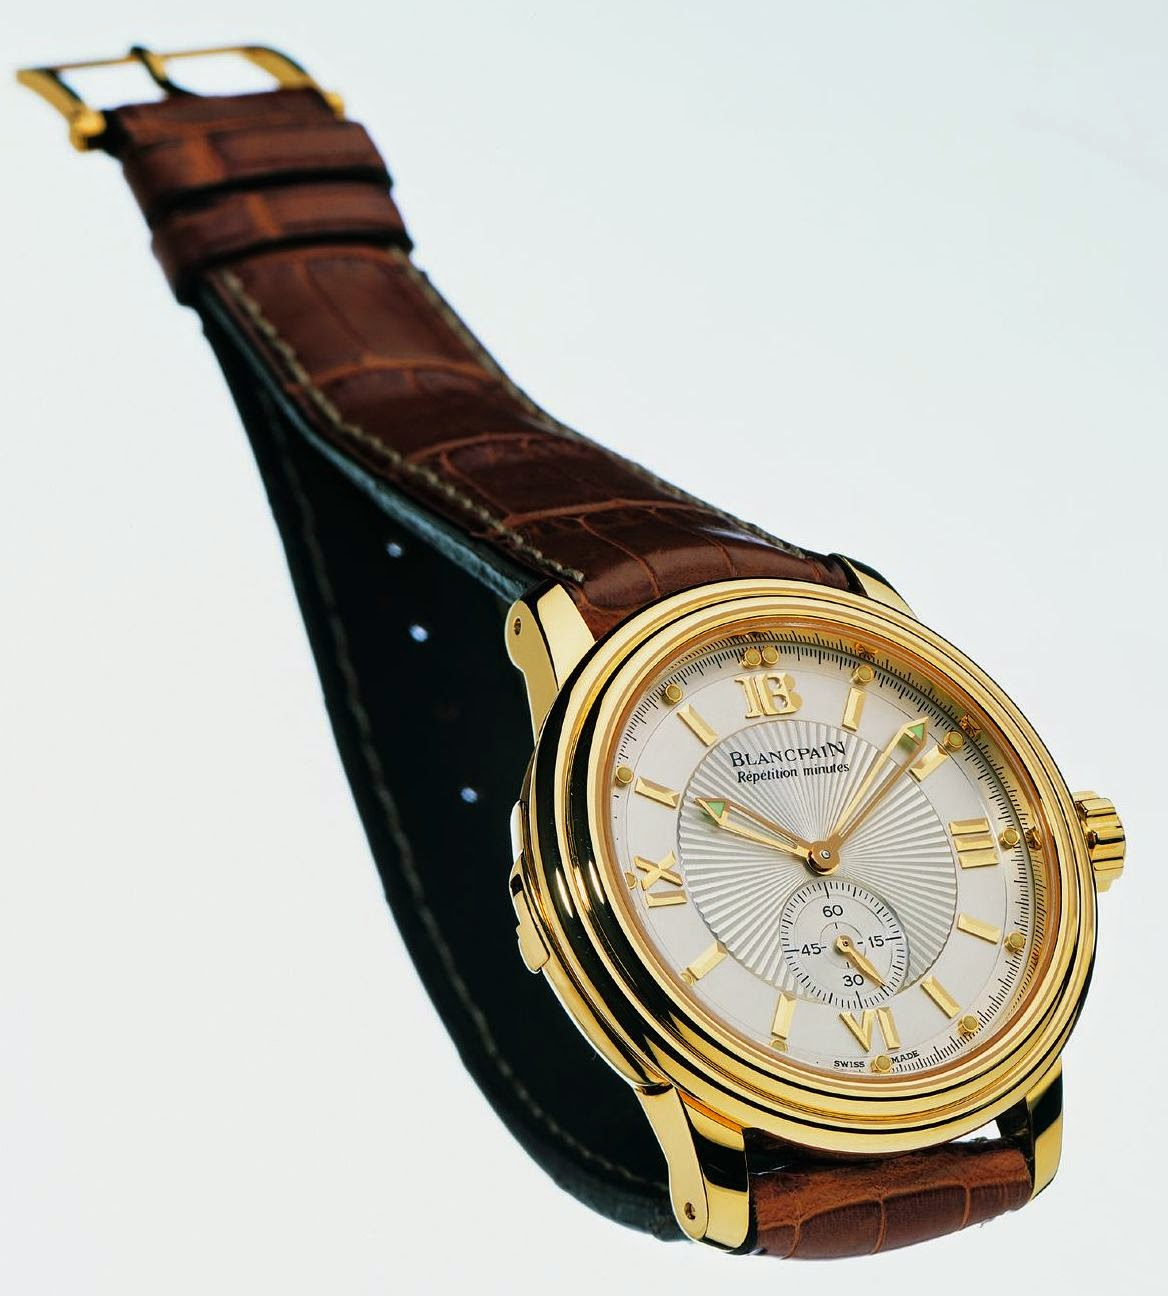 BLANCPAIN Répétition Minutes Étanche 2135 Yellow Gold -  The First Minute Repeater Wristwatch with Water Resistant to 30 Meters